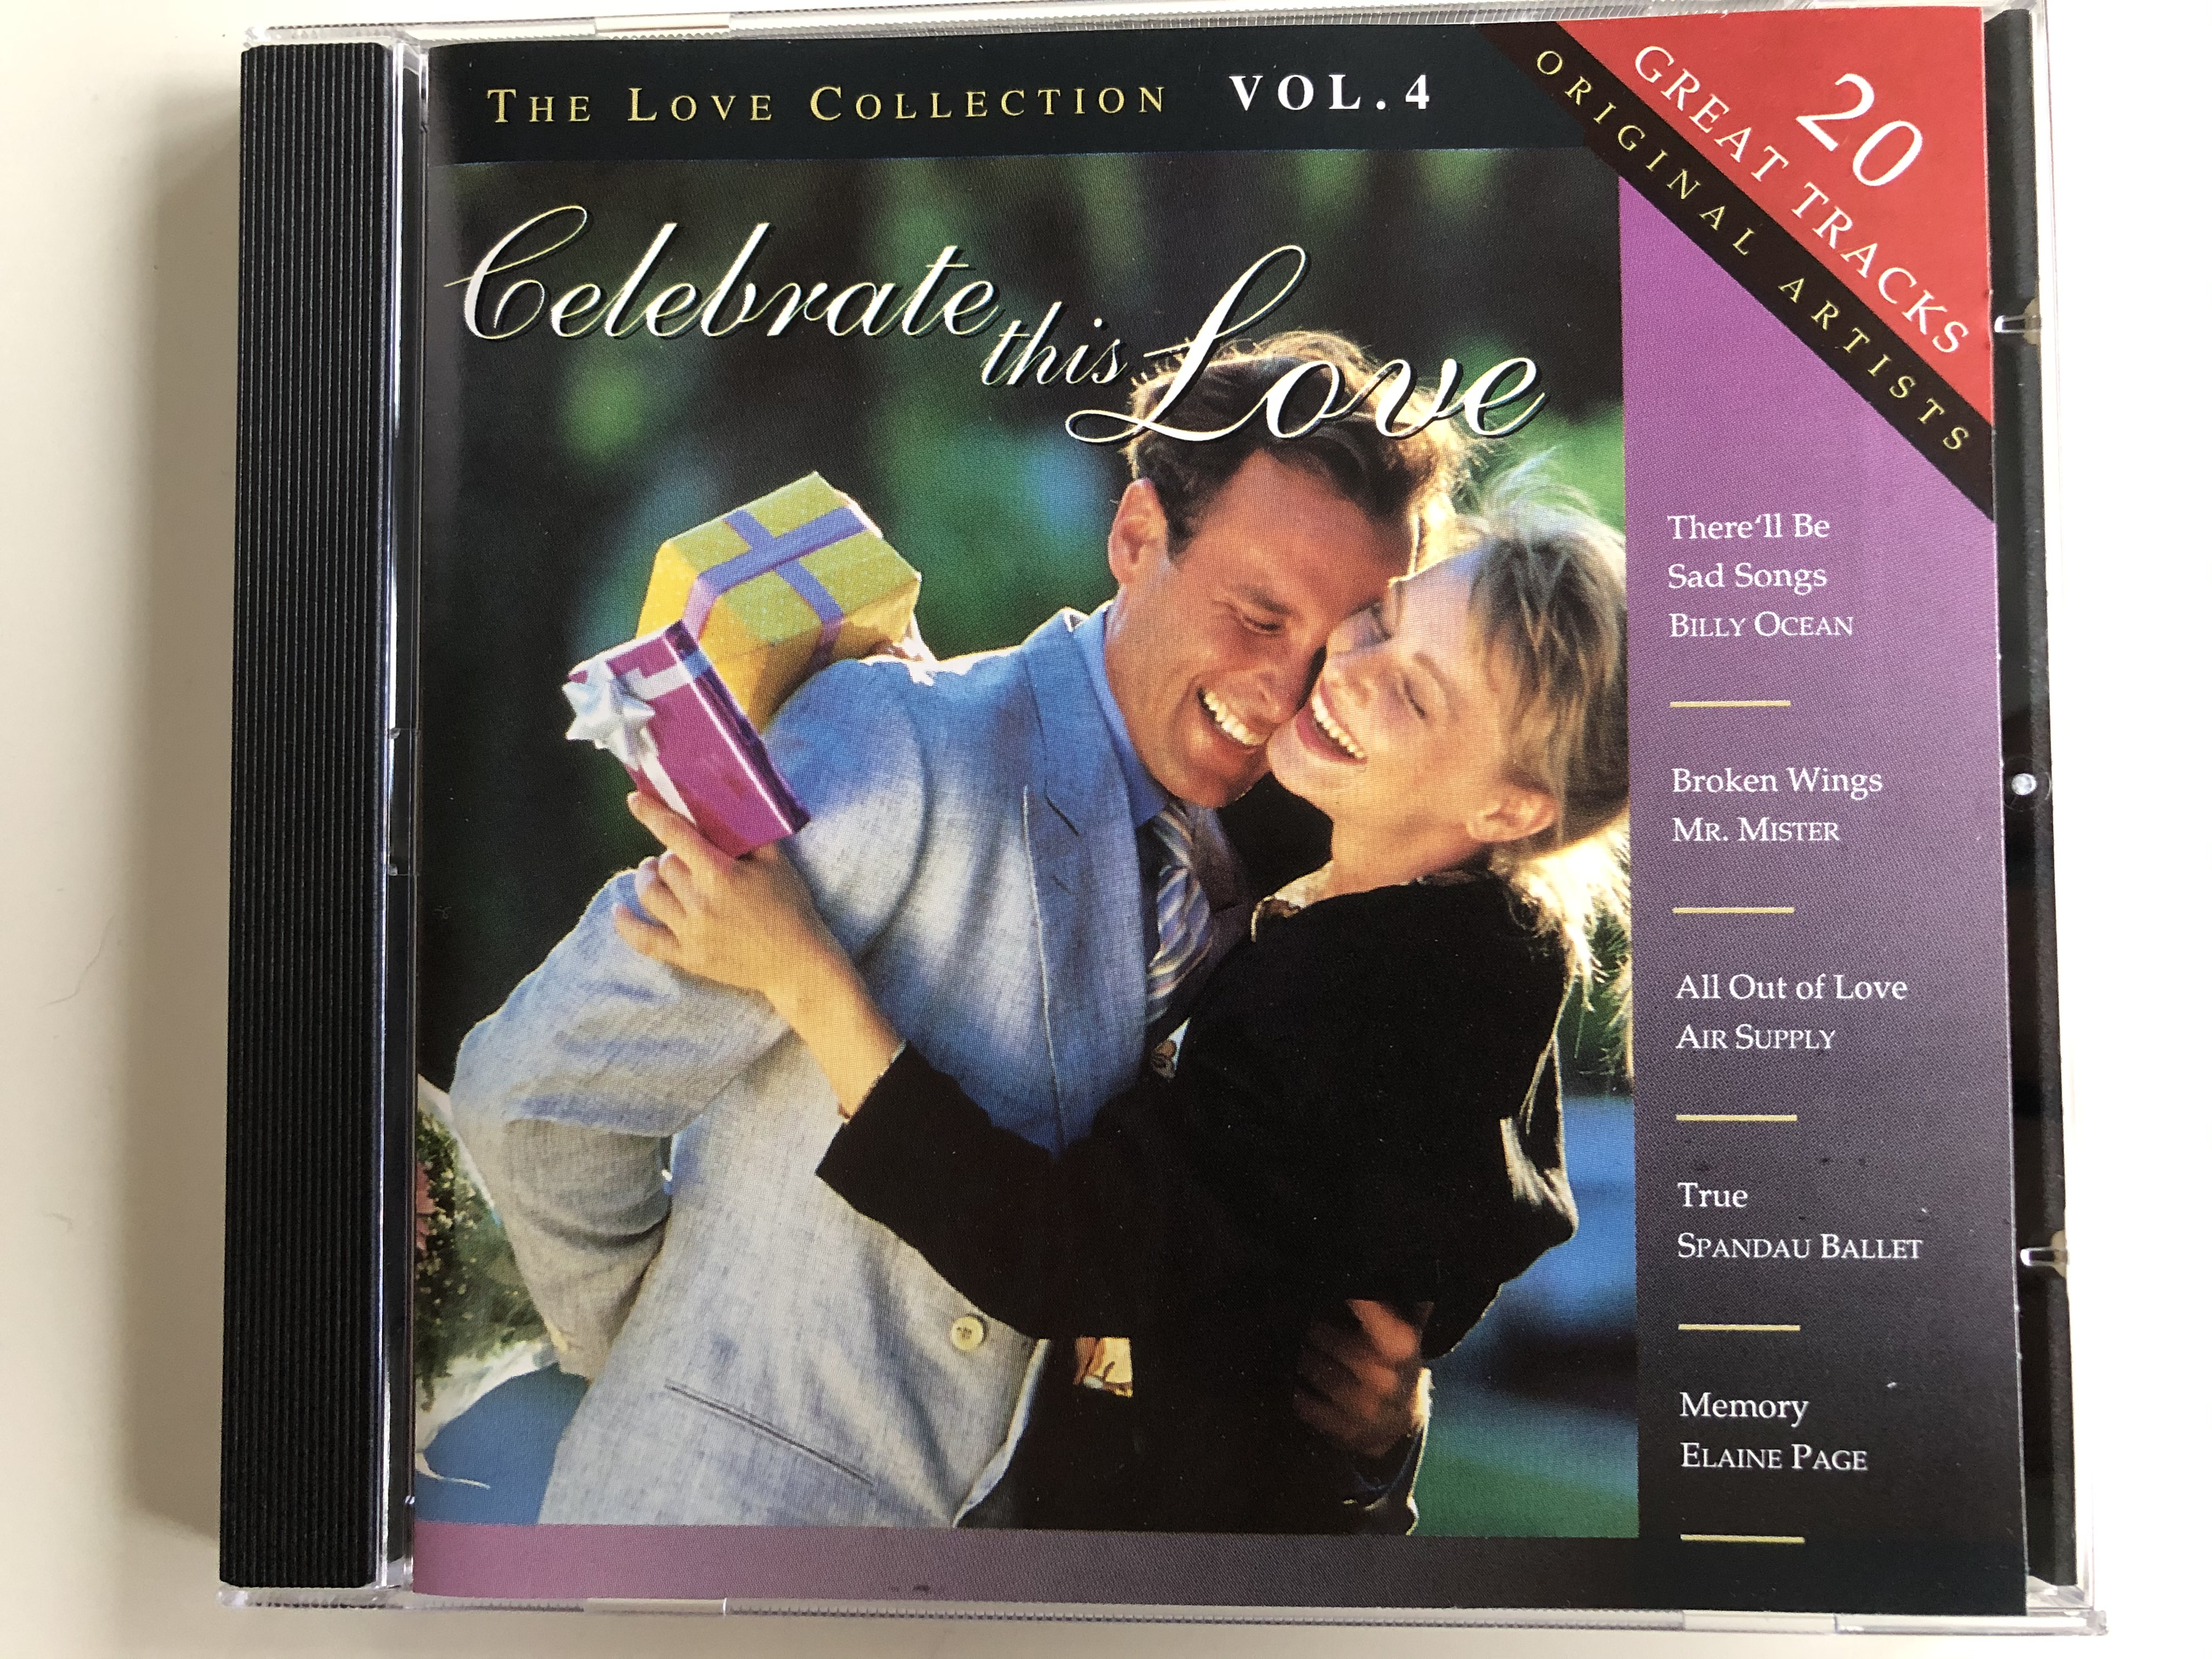 the-love-collection-vol.-4-celebrate-this-love-20-great-tracks-original-artists-there-ll-be-sad-songs-billy-ocean-broken-wings-mr.-mister-all-out-of-love-air-supply-true-spand-1-.jpg